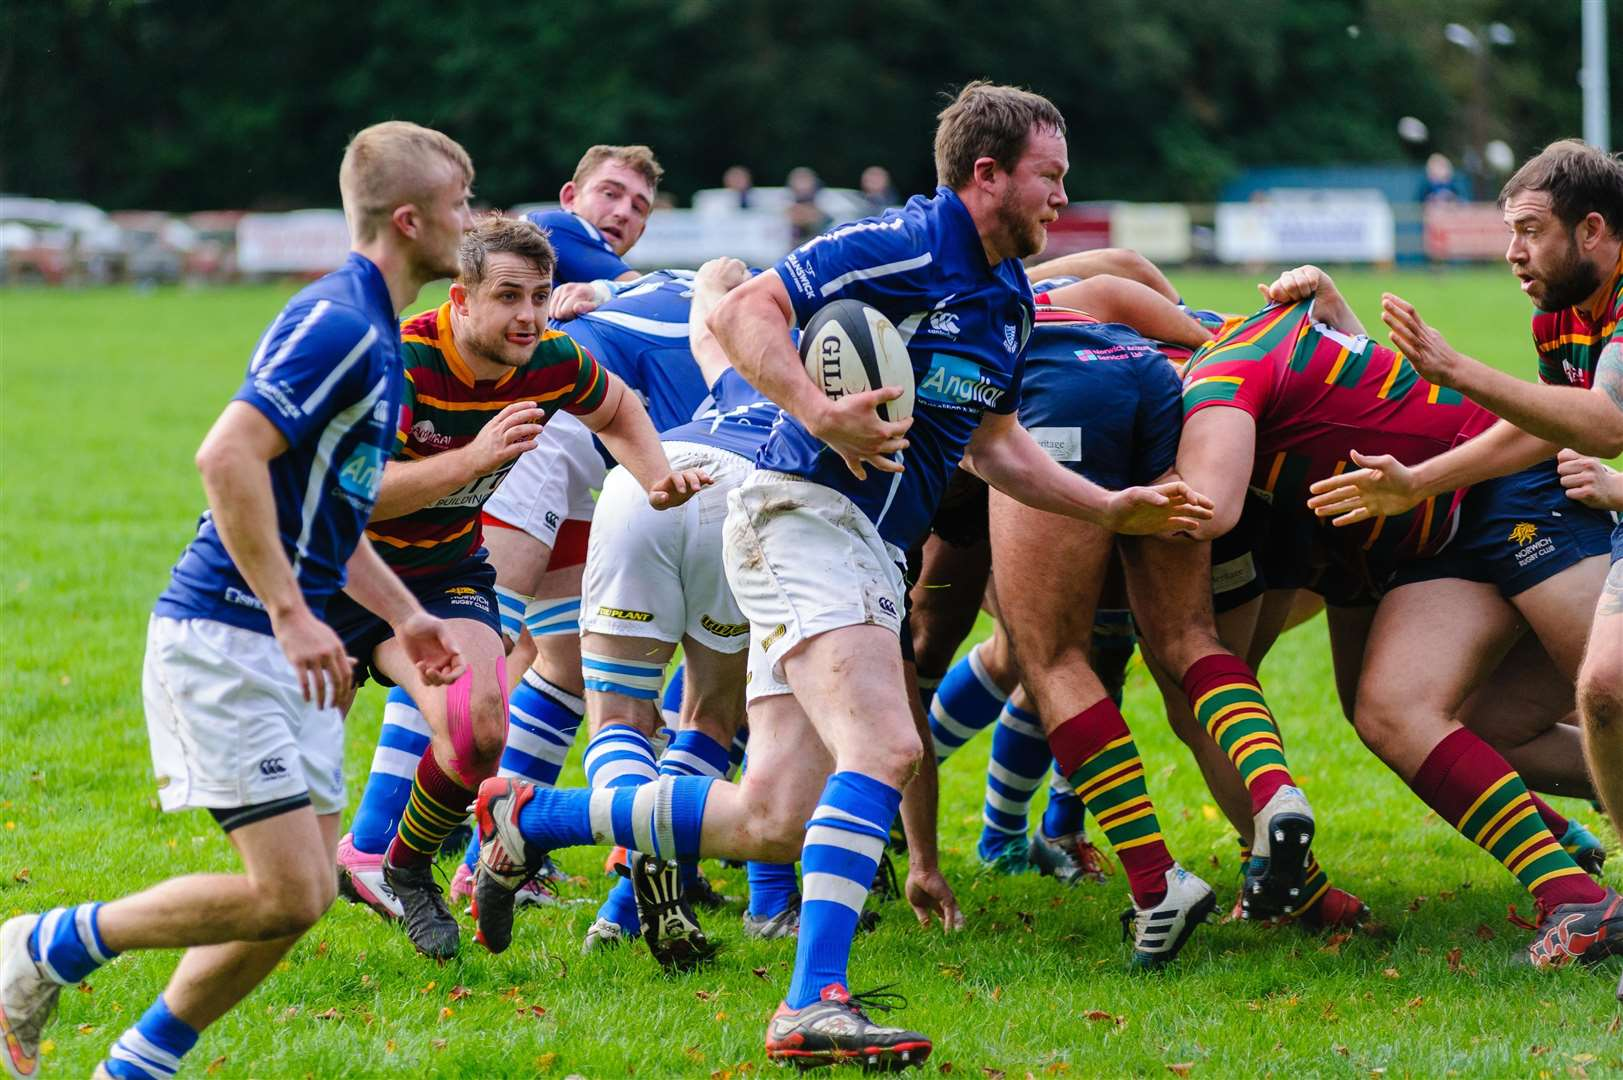 Rugby action from Diss v Norwich - Deaglan Hall..Mark Bullimore Photography 2019. (31948896)